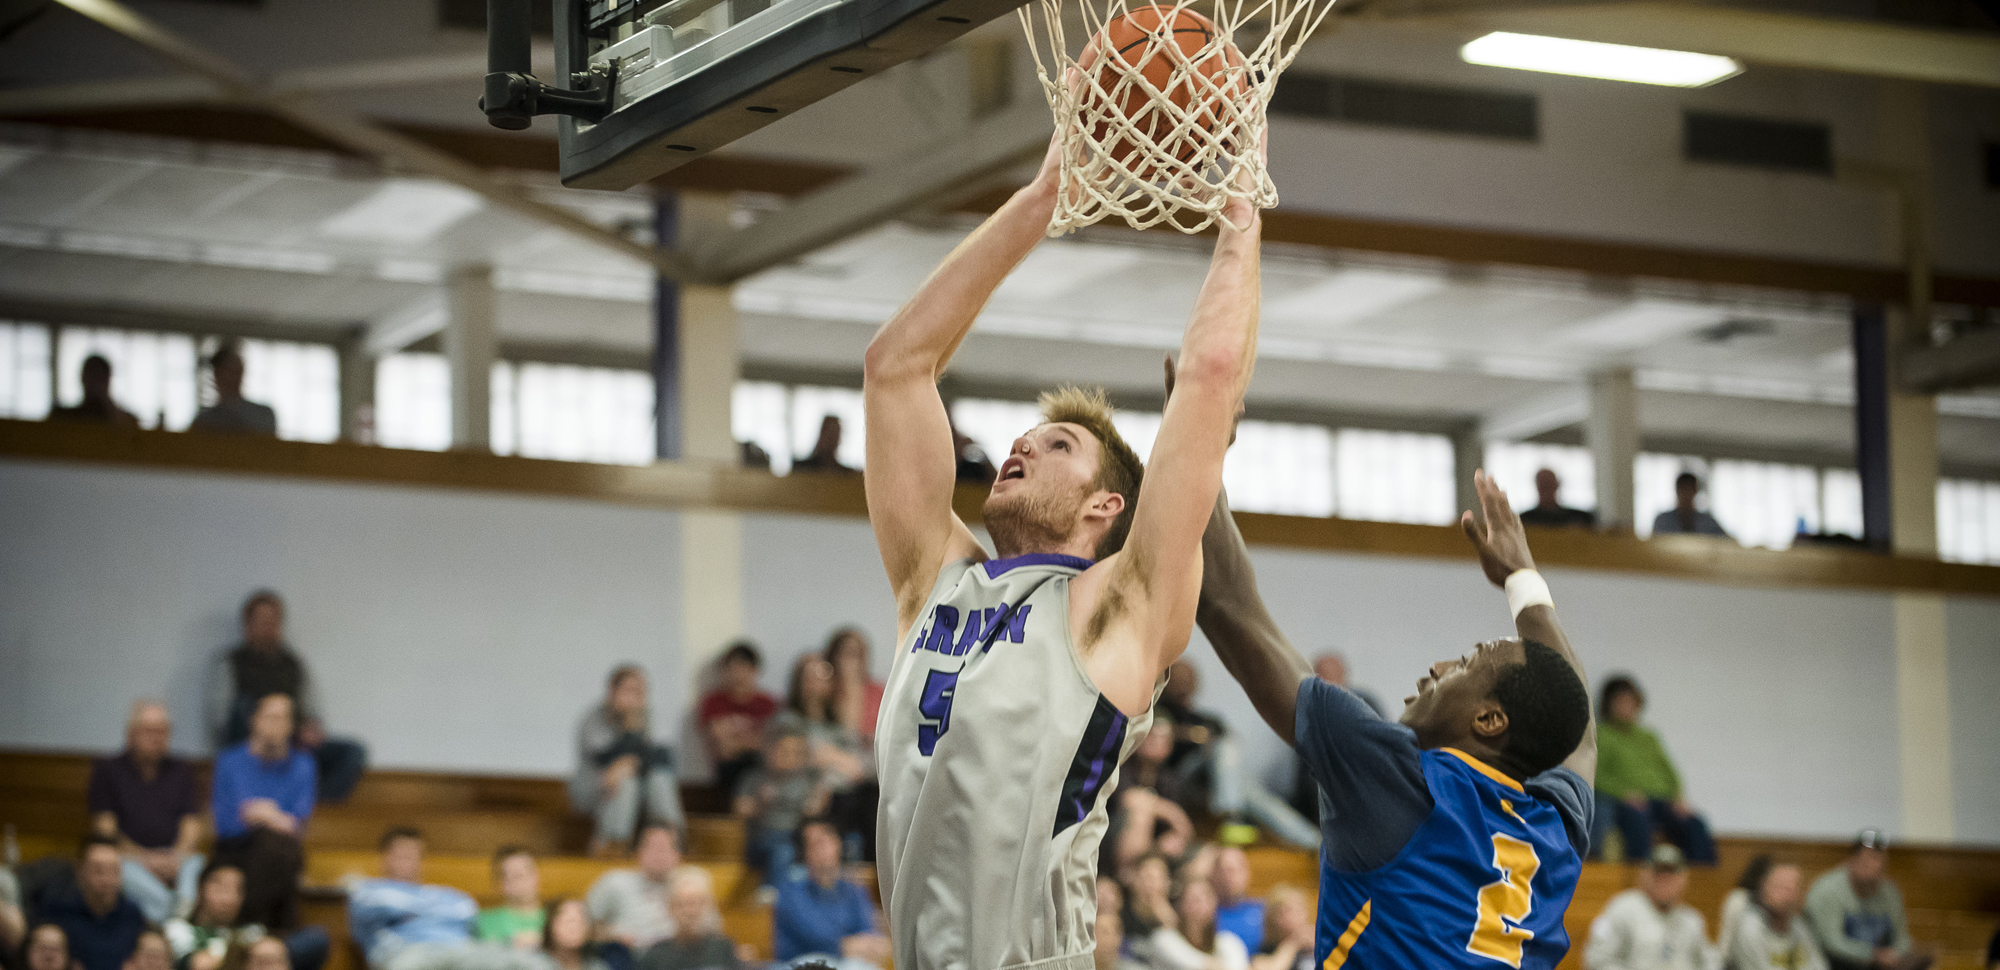 Senior center John Vitkus had 26 points as the Royals beat Oswego State, 82-77, in overtime in the first round of the NCAA Tournament on Friday night.